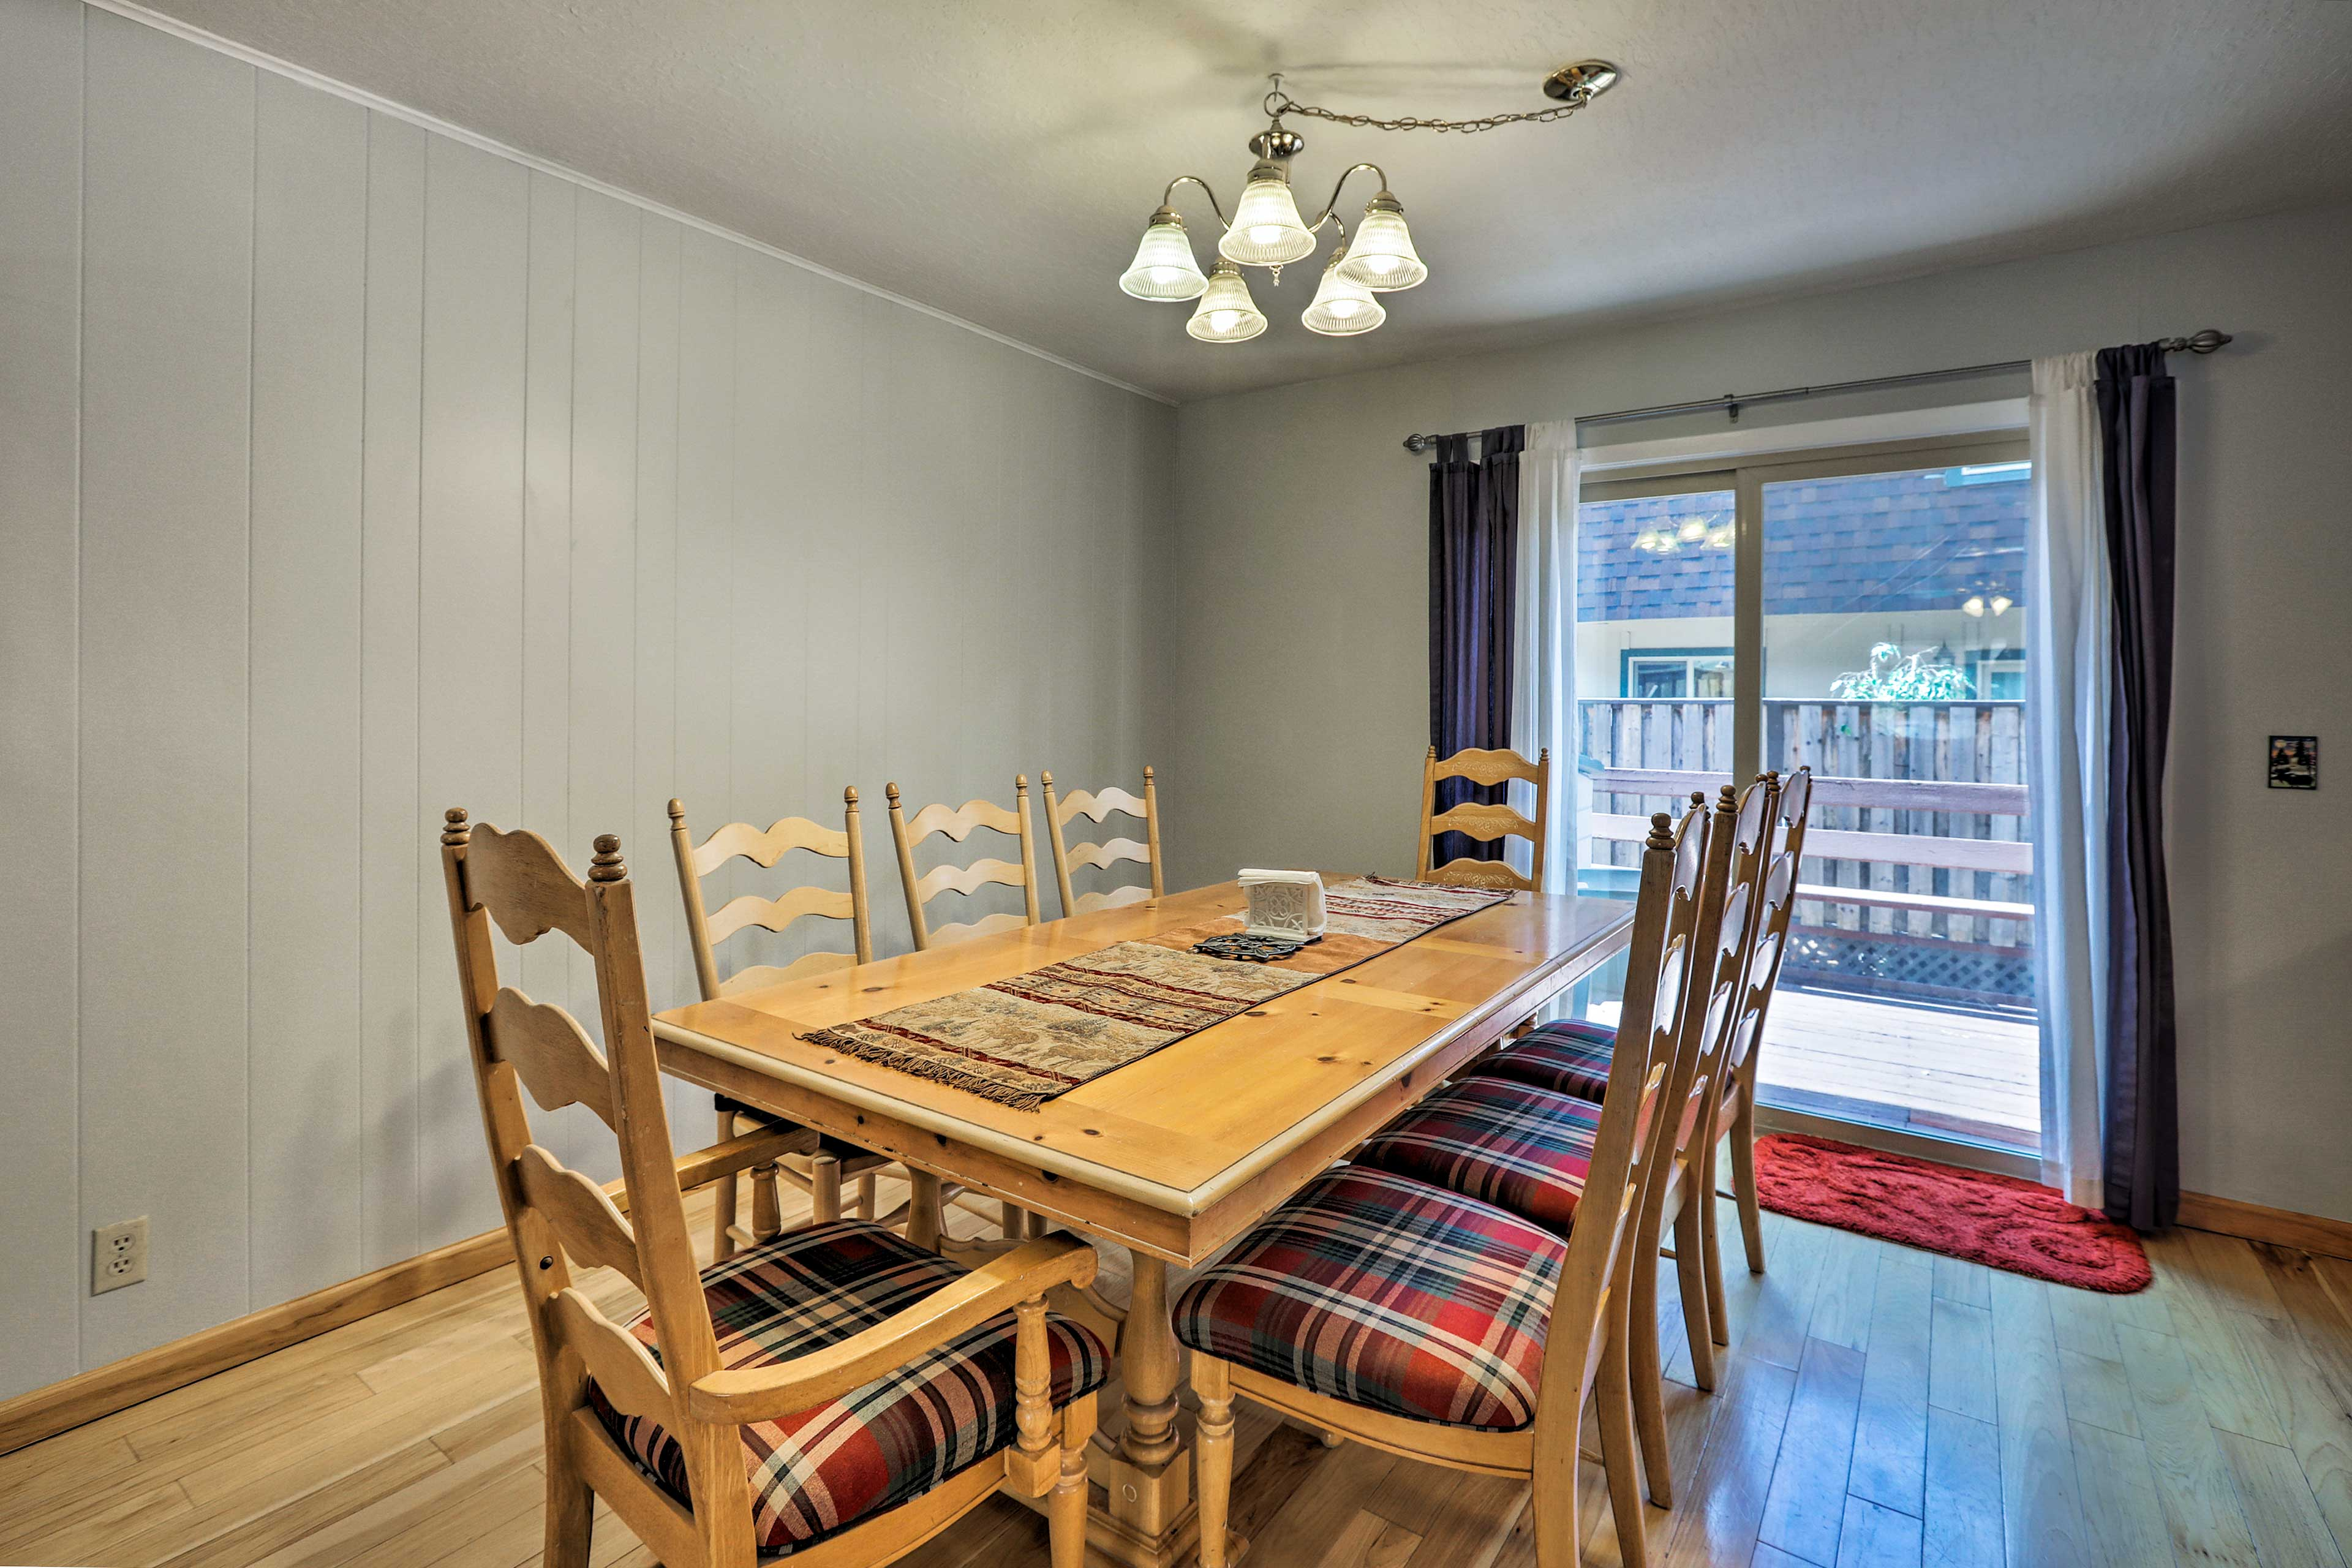 This vacation rental home makes for a great family getaway!